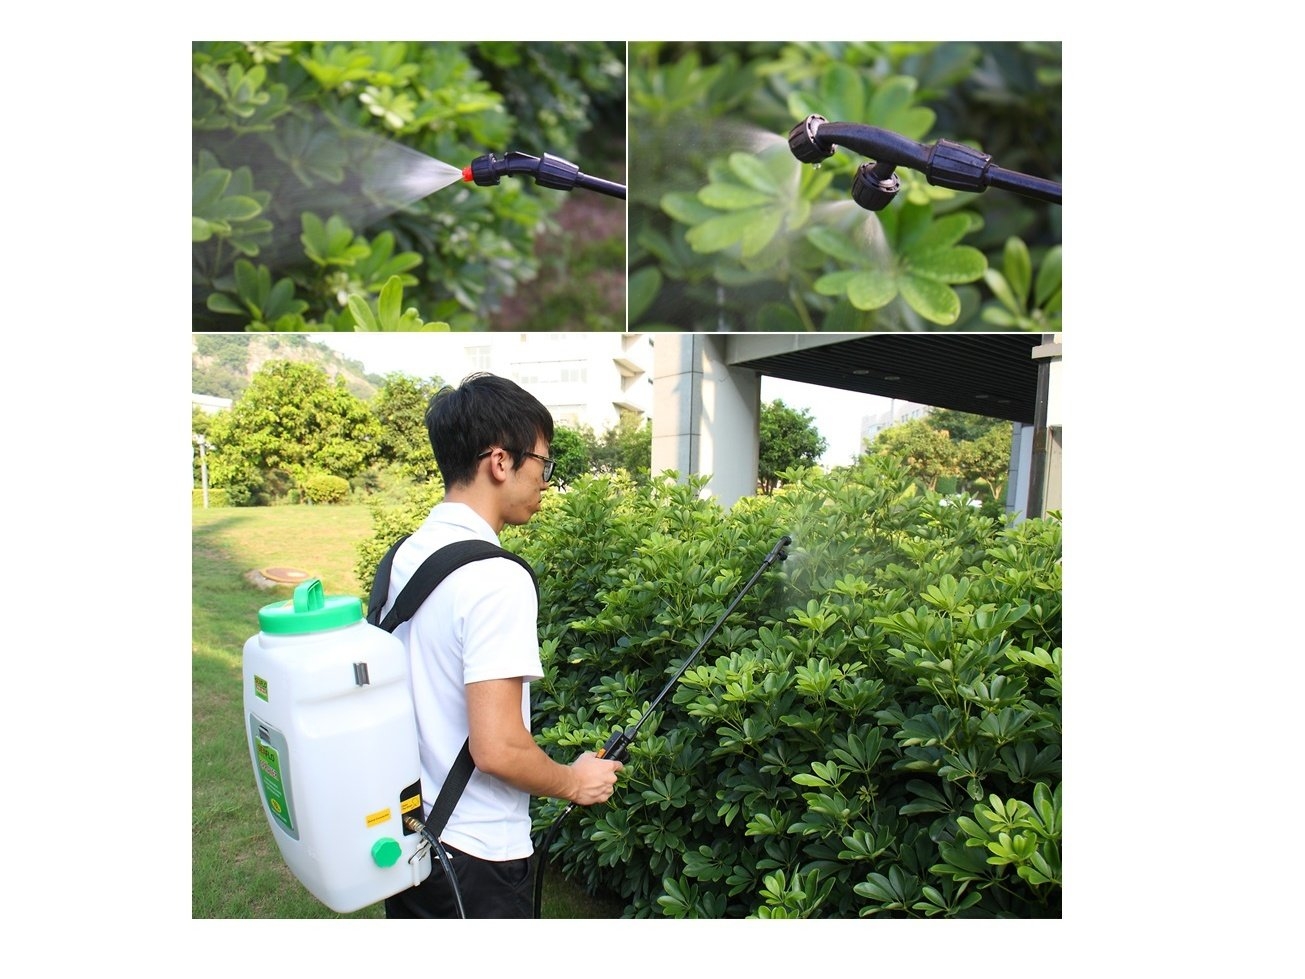 Knapsack Agricultural Electric Sprayer SeaFlo Model - 16 liter with 12-volt rechargeable battery - BC-3865 by Five Oceans (Image #5)